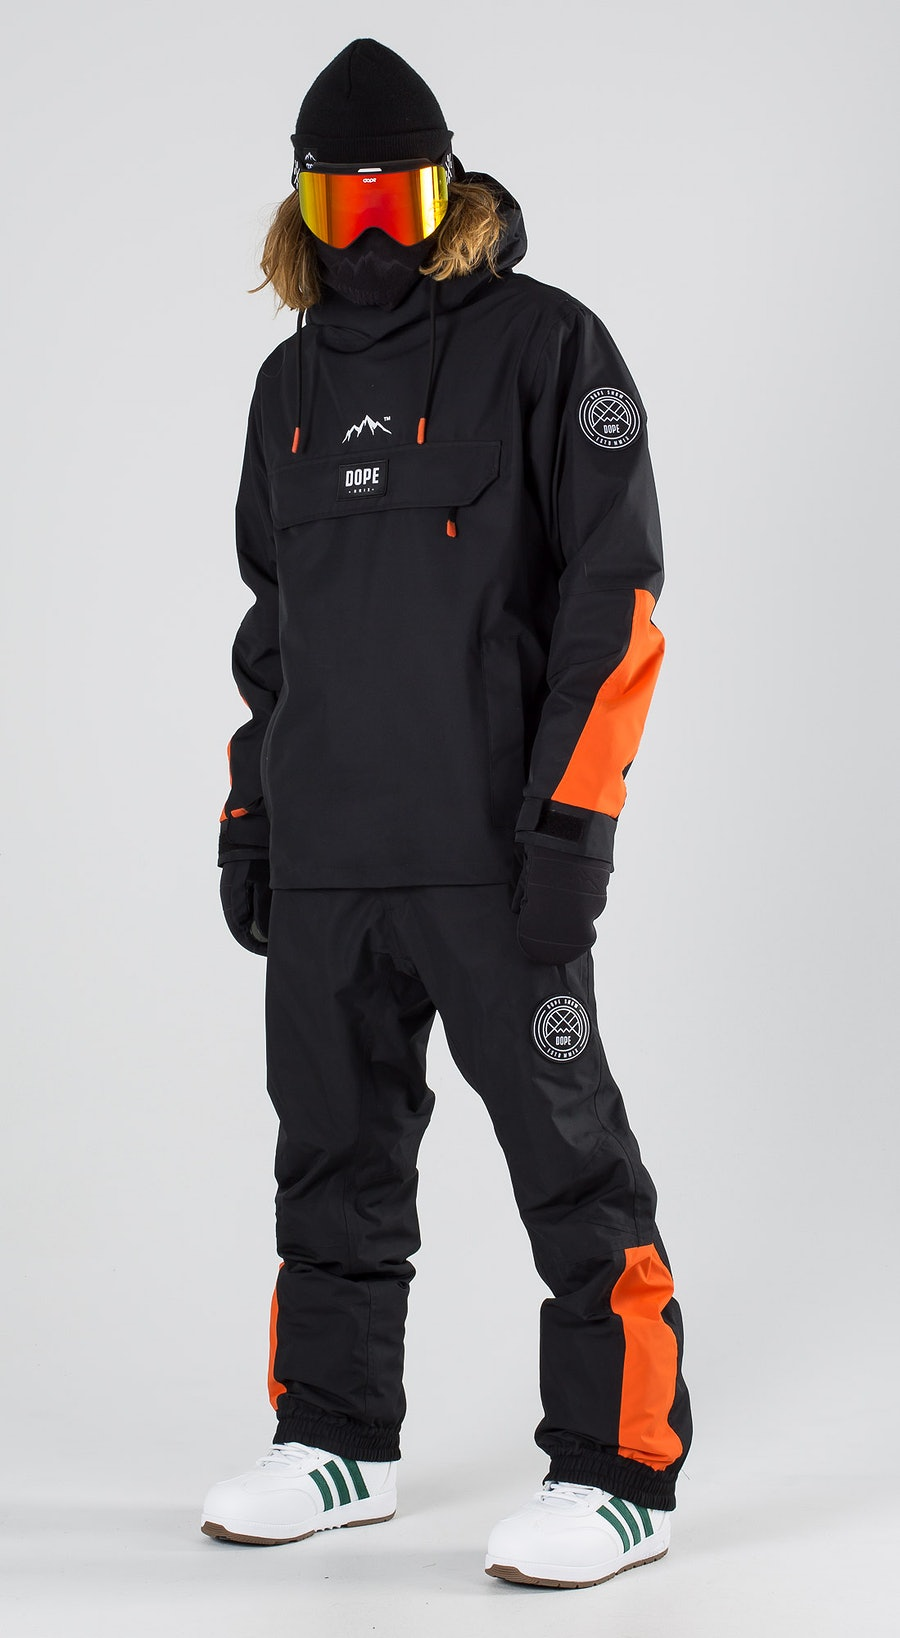 Dope Blizzard LE Black Orange Vêtements de Snowboard  Multi